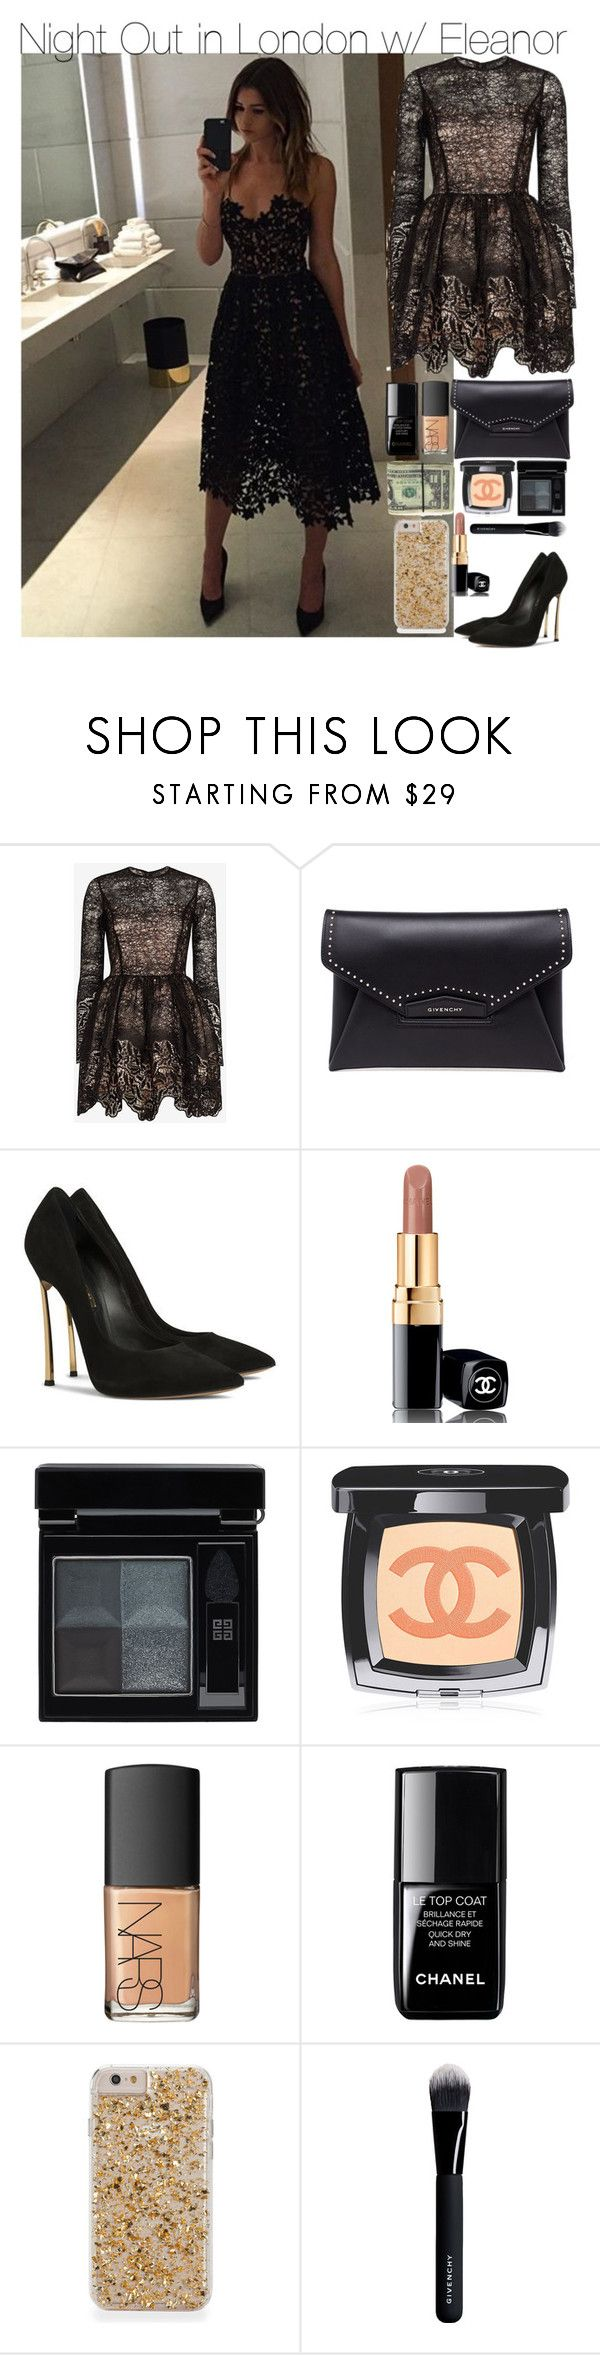 """""""Night Out in London w/ Eleanor"""" by your-fashion-lover ❤ liked on Polyvore featuring Calder, Alexis, Givenchy, Casadei, Chanel, NARS Cosmetics, le top, NightOut, eleanorcalder and instagram"""